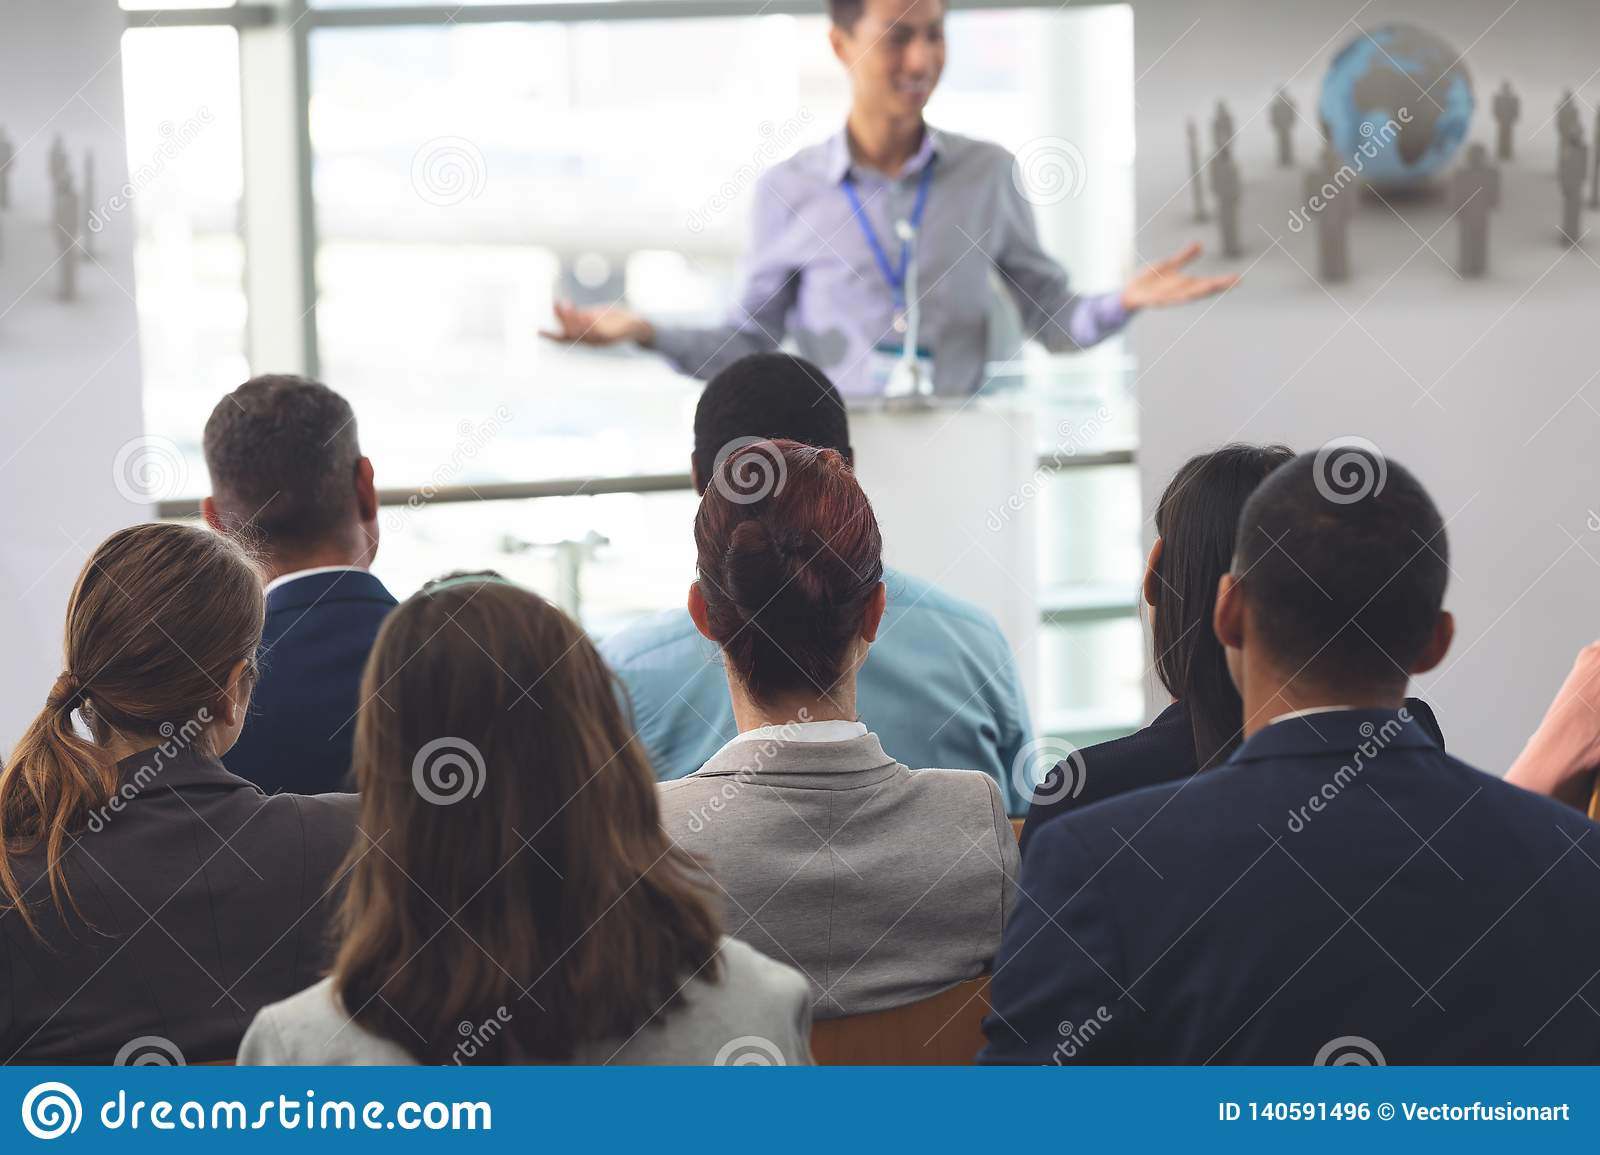 Group of business professionals attending a seminar